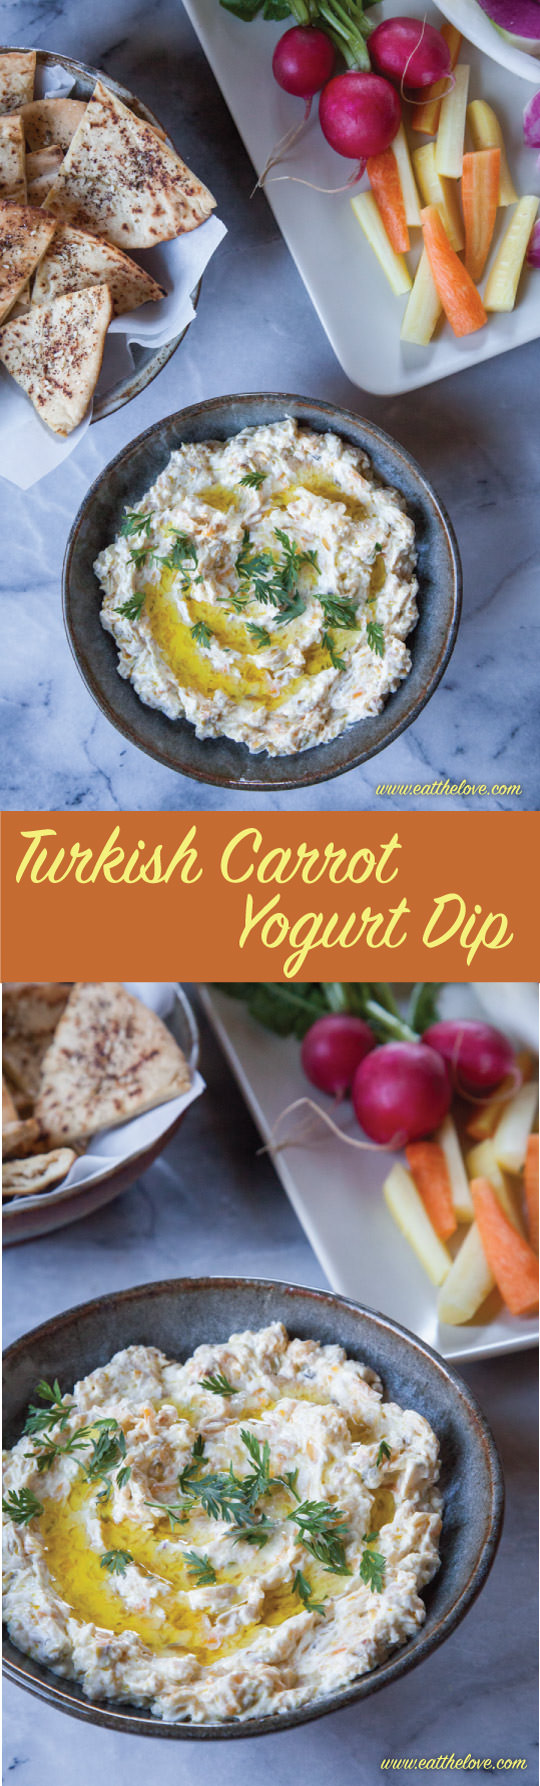 This Turkish Carrot Yogurt Dip is a great appetizer or party dish and is super easy to make!